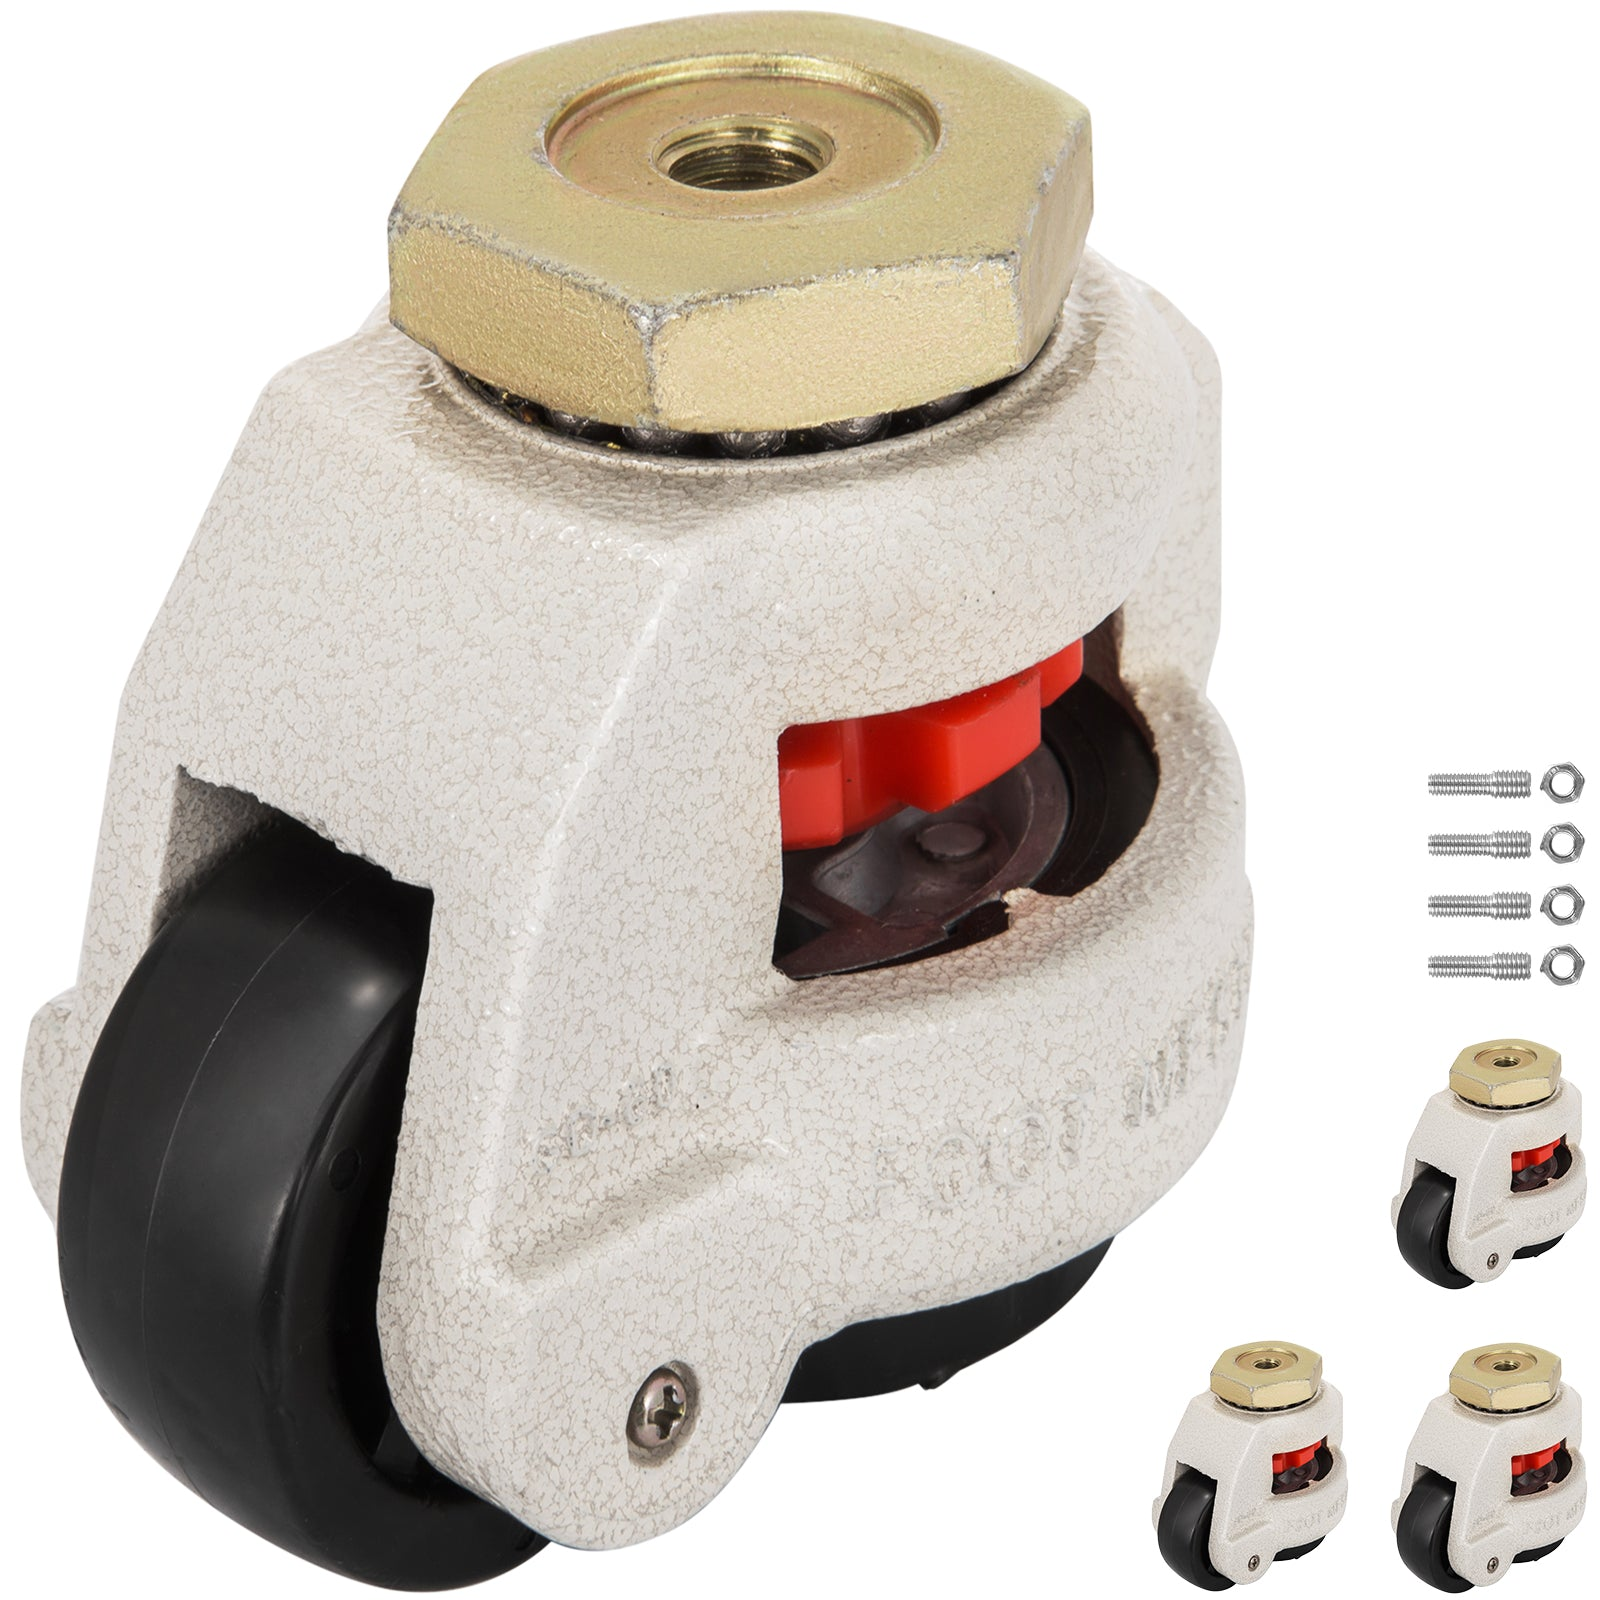 Gd-80s Set Of 4 Leveling Casters High Wearability Footmaster Caster Flexible